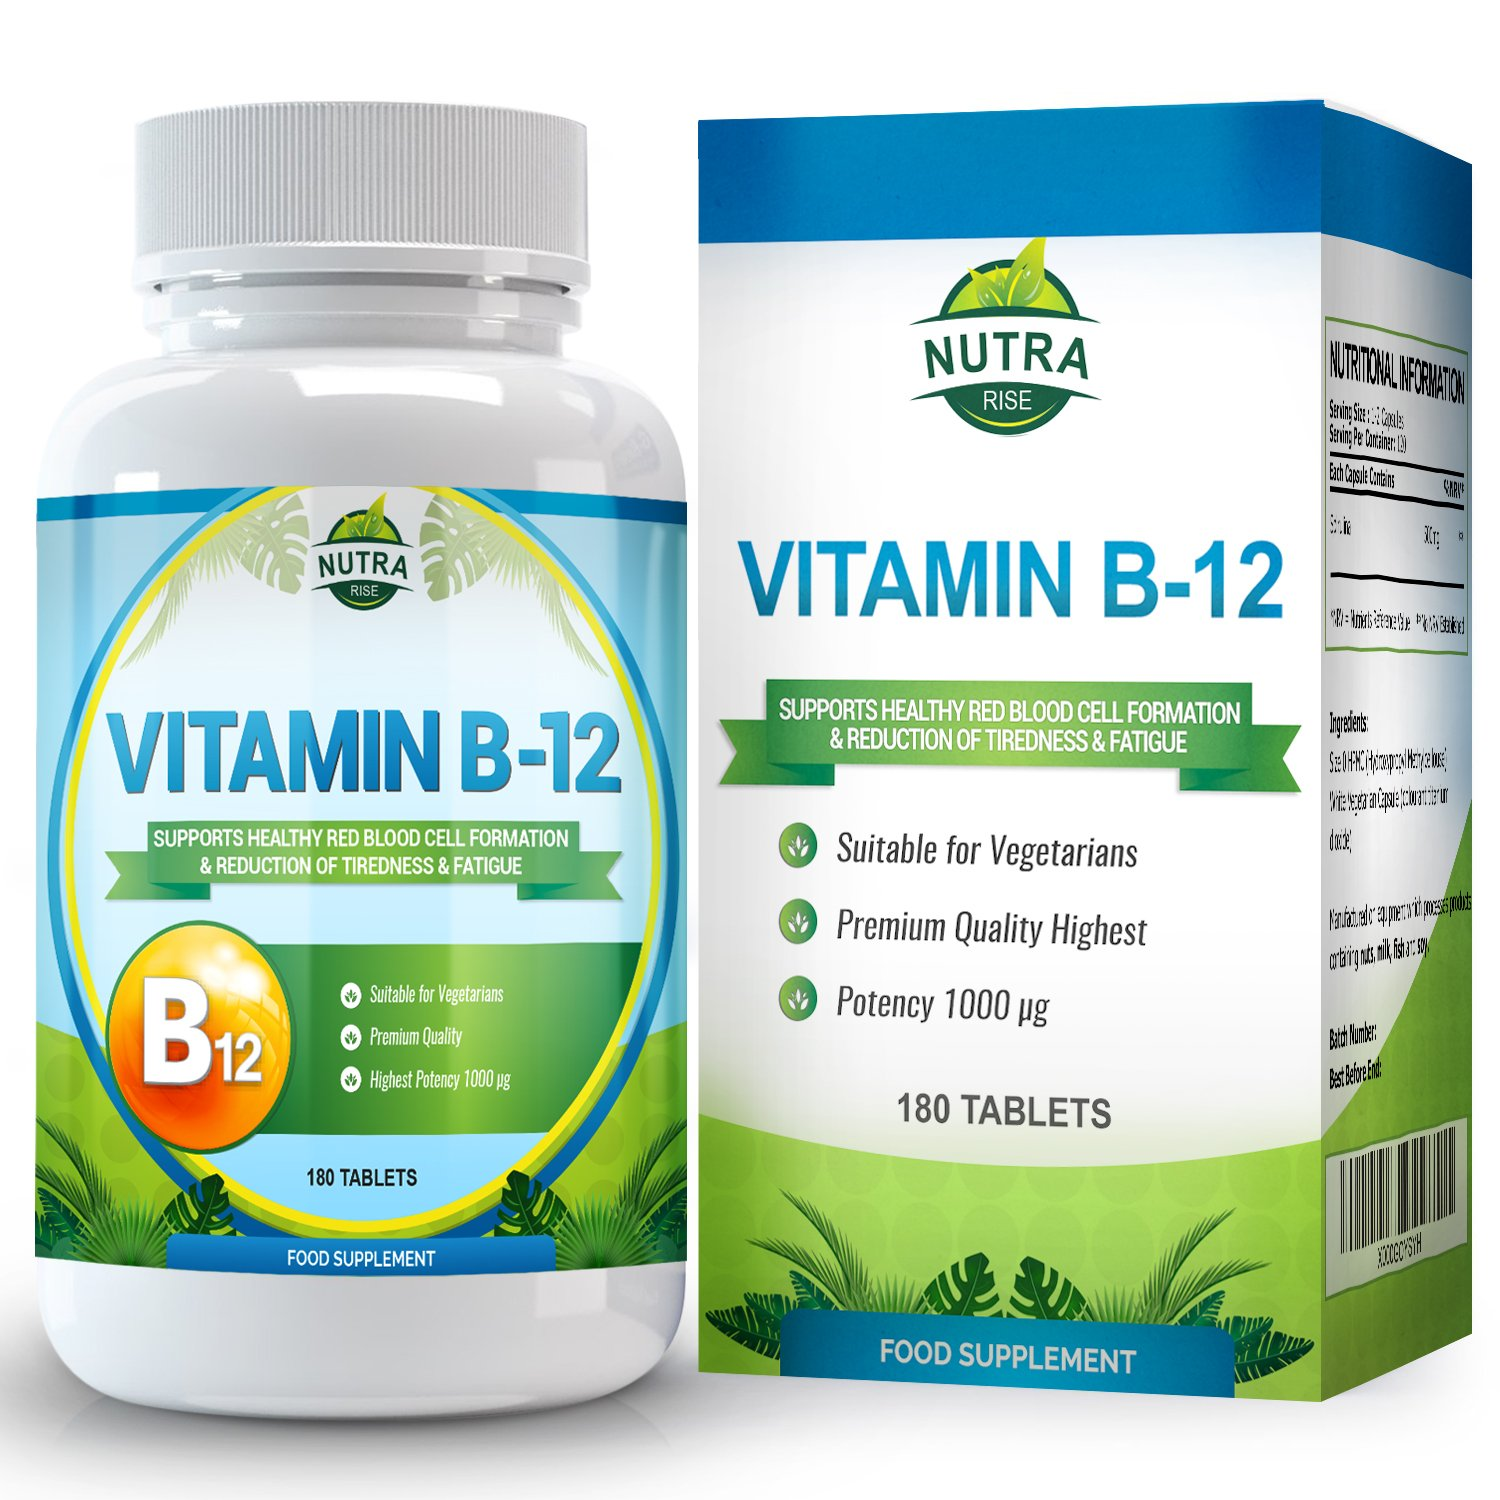 Amazon.com: Vitamin B12, Cyanocobalamin, High Strength Complex for B12 Deficiency, Vit B 12 Brain Supplement that Helps with Memory and Nerve Support - 180 ...